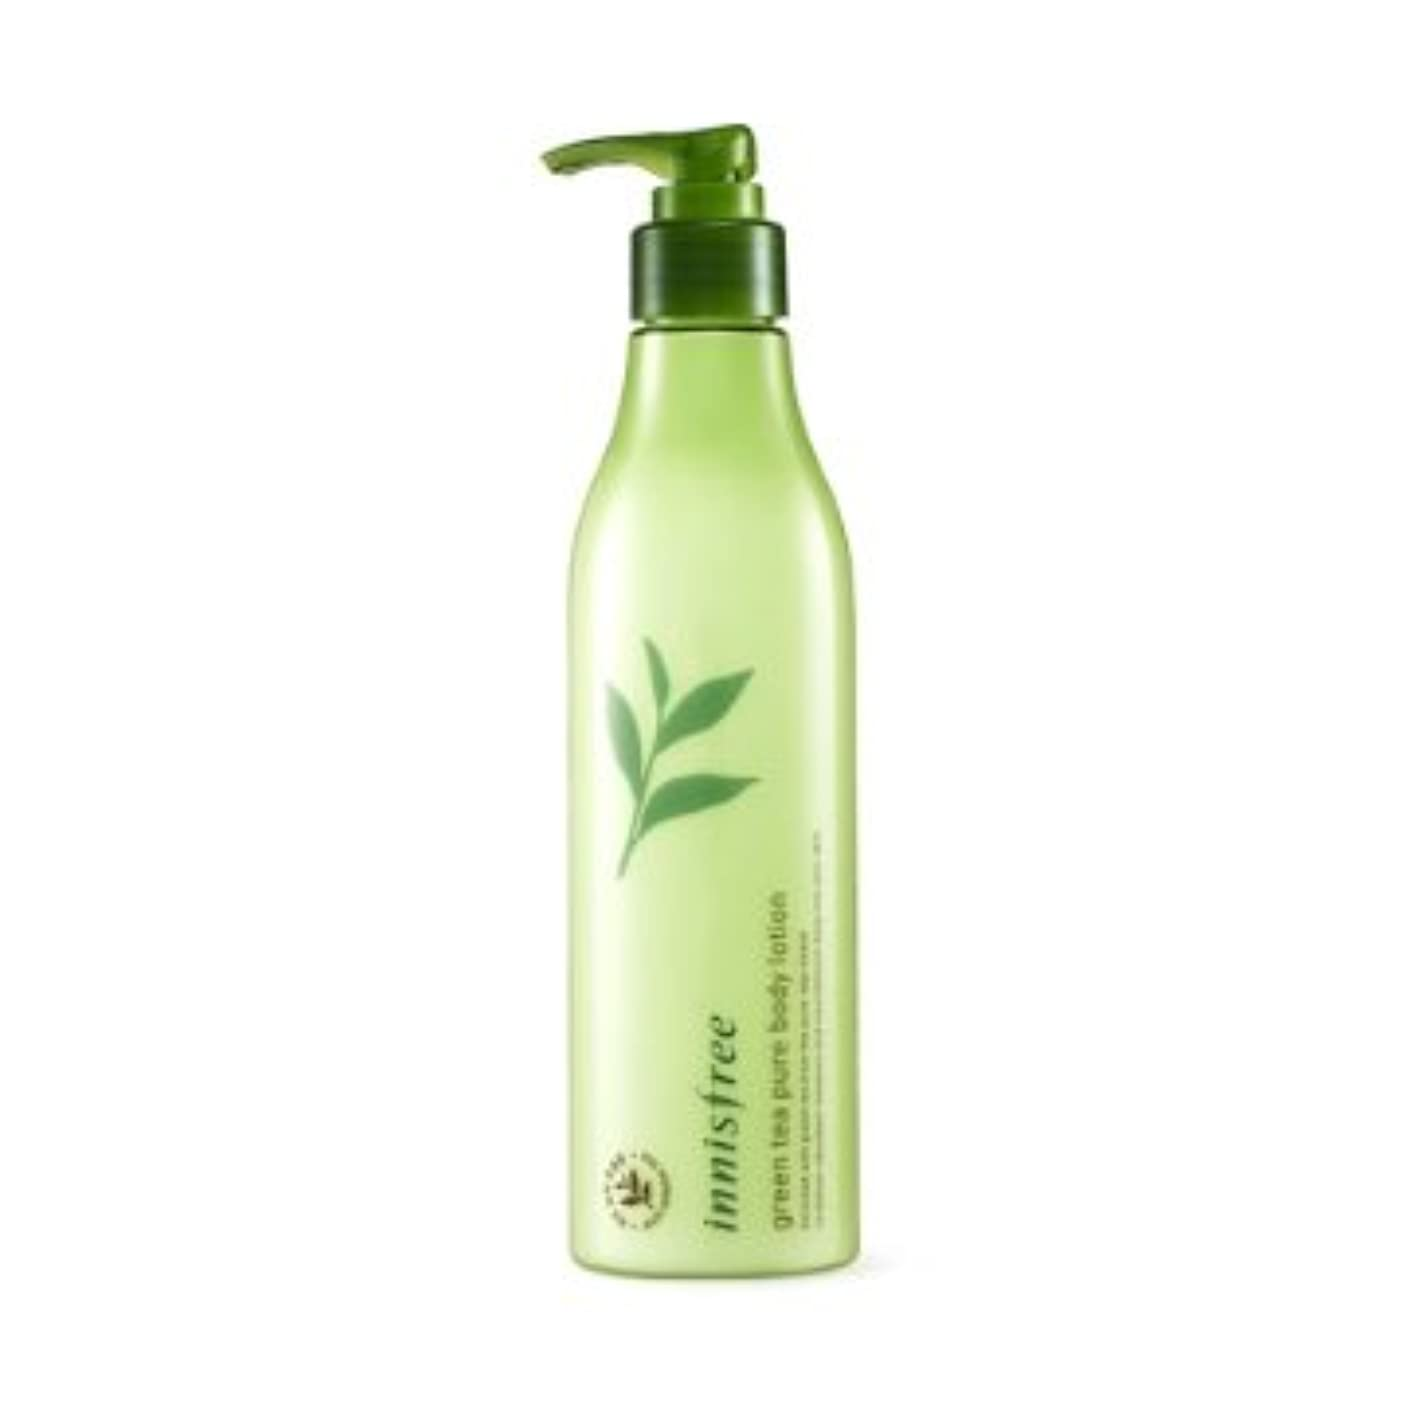 【イニスフリー】Innisfree green tea pure body lotion - 300ml (韓国直送品) (SHOPPINGINSTAGRAM)